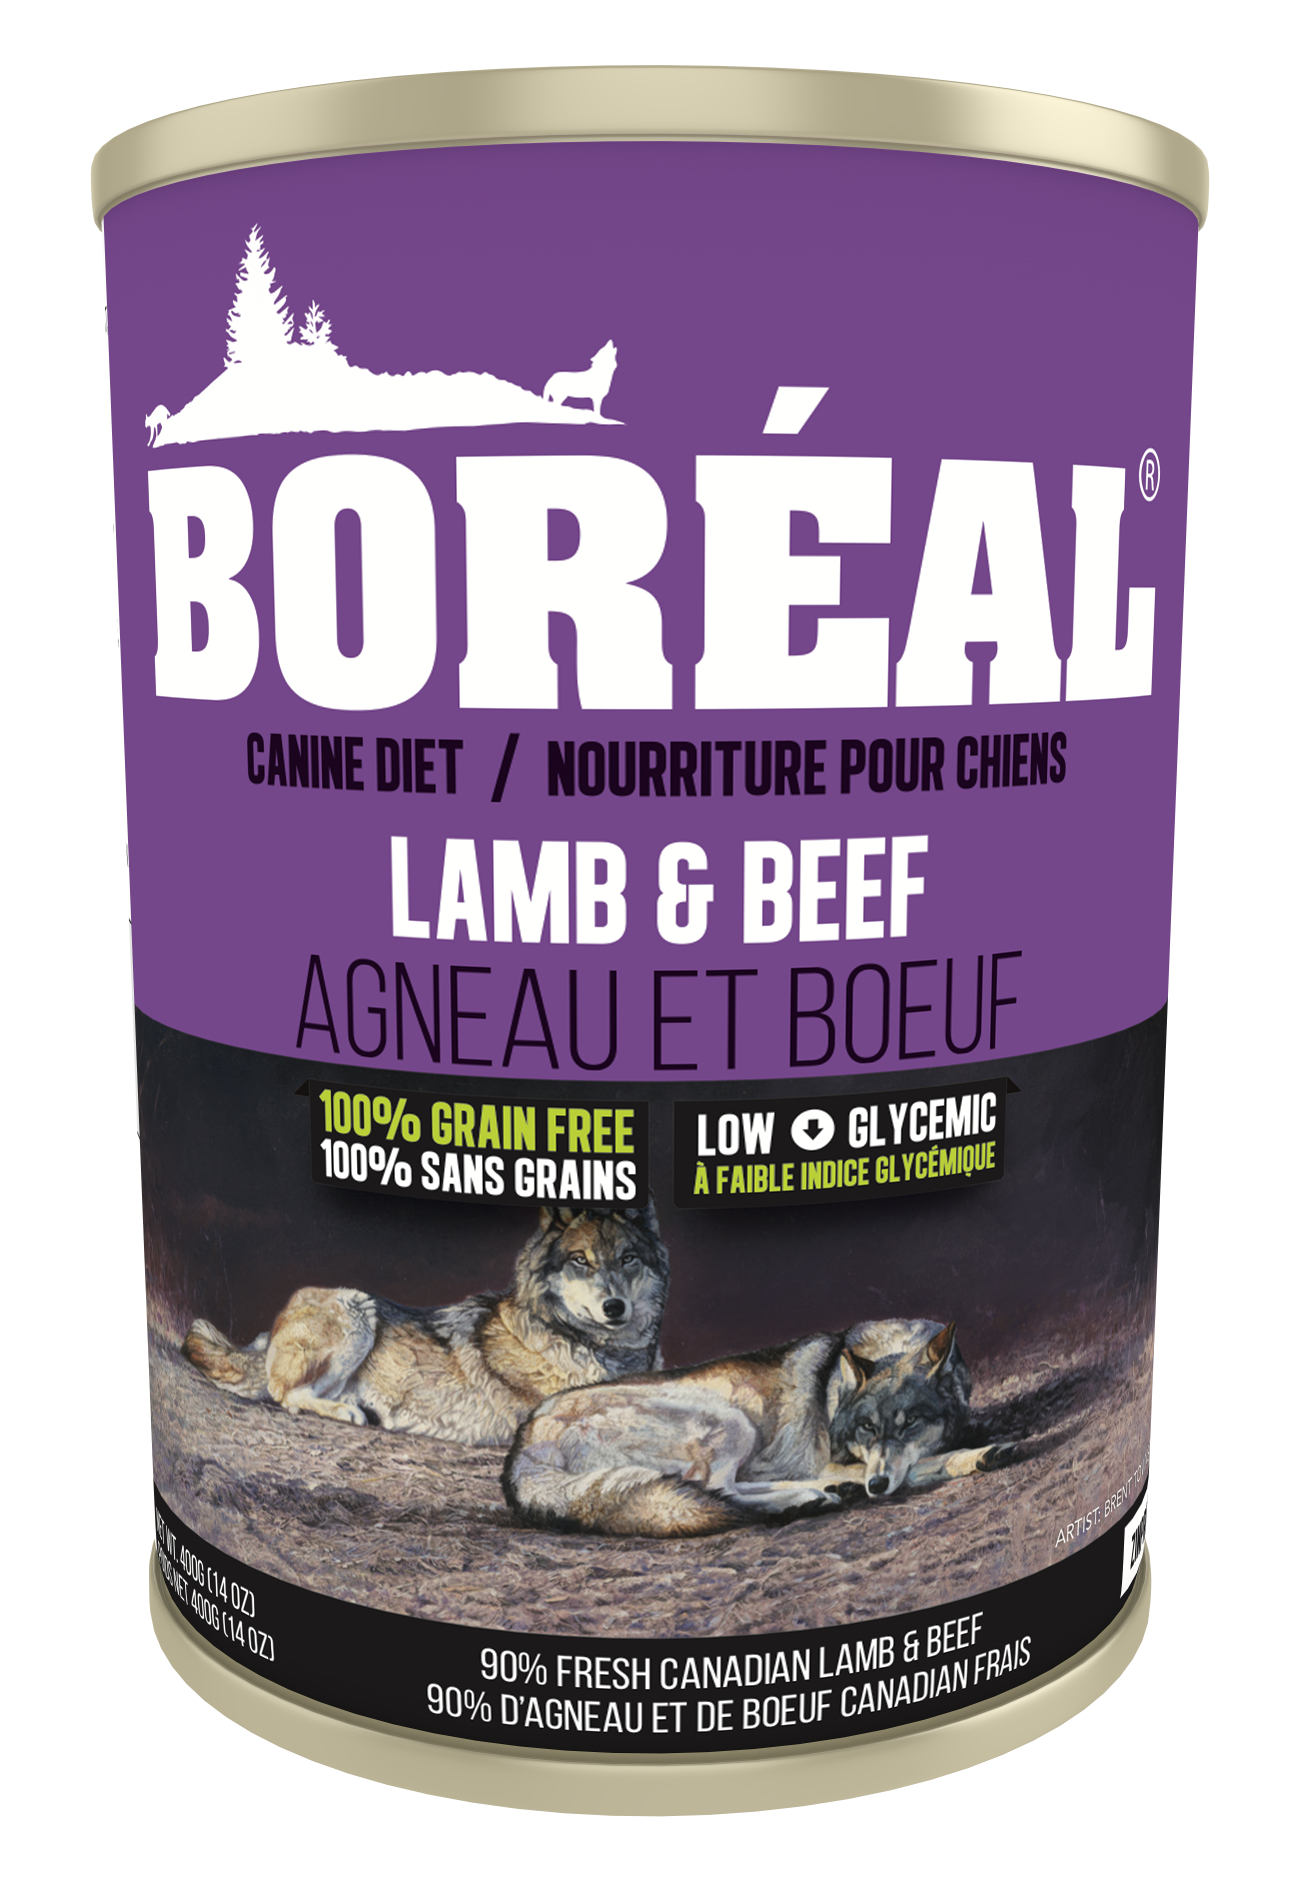 Big Bear Lamb & Beef 690g